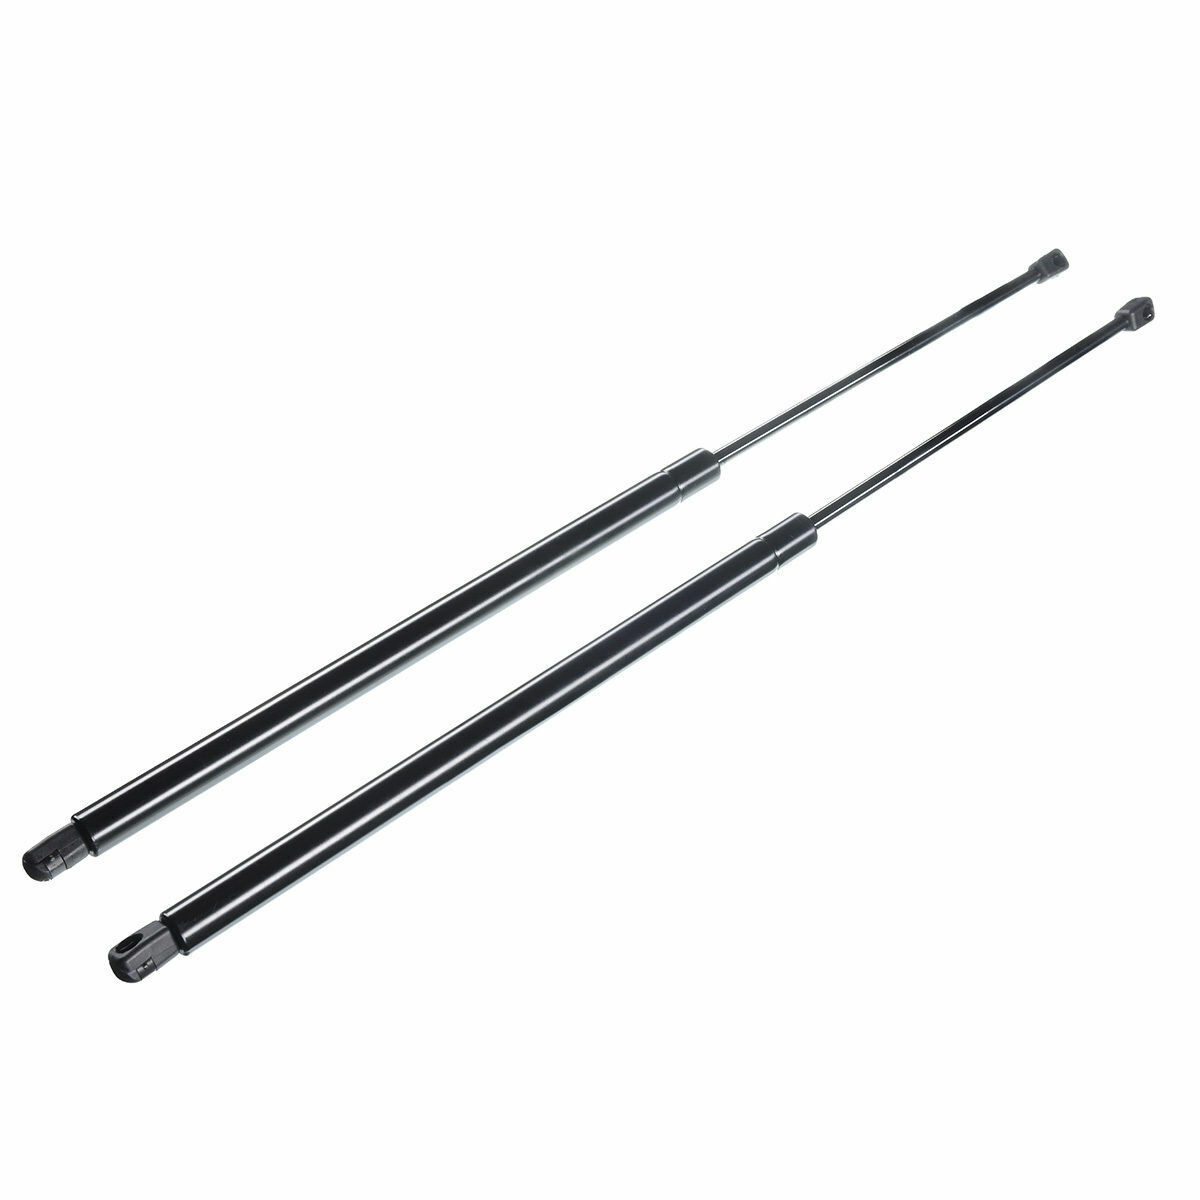 2 PCS Tailgate Lift Supports Struts For Buick Rendezvous